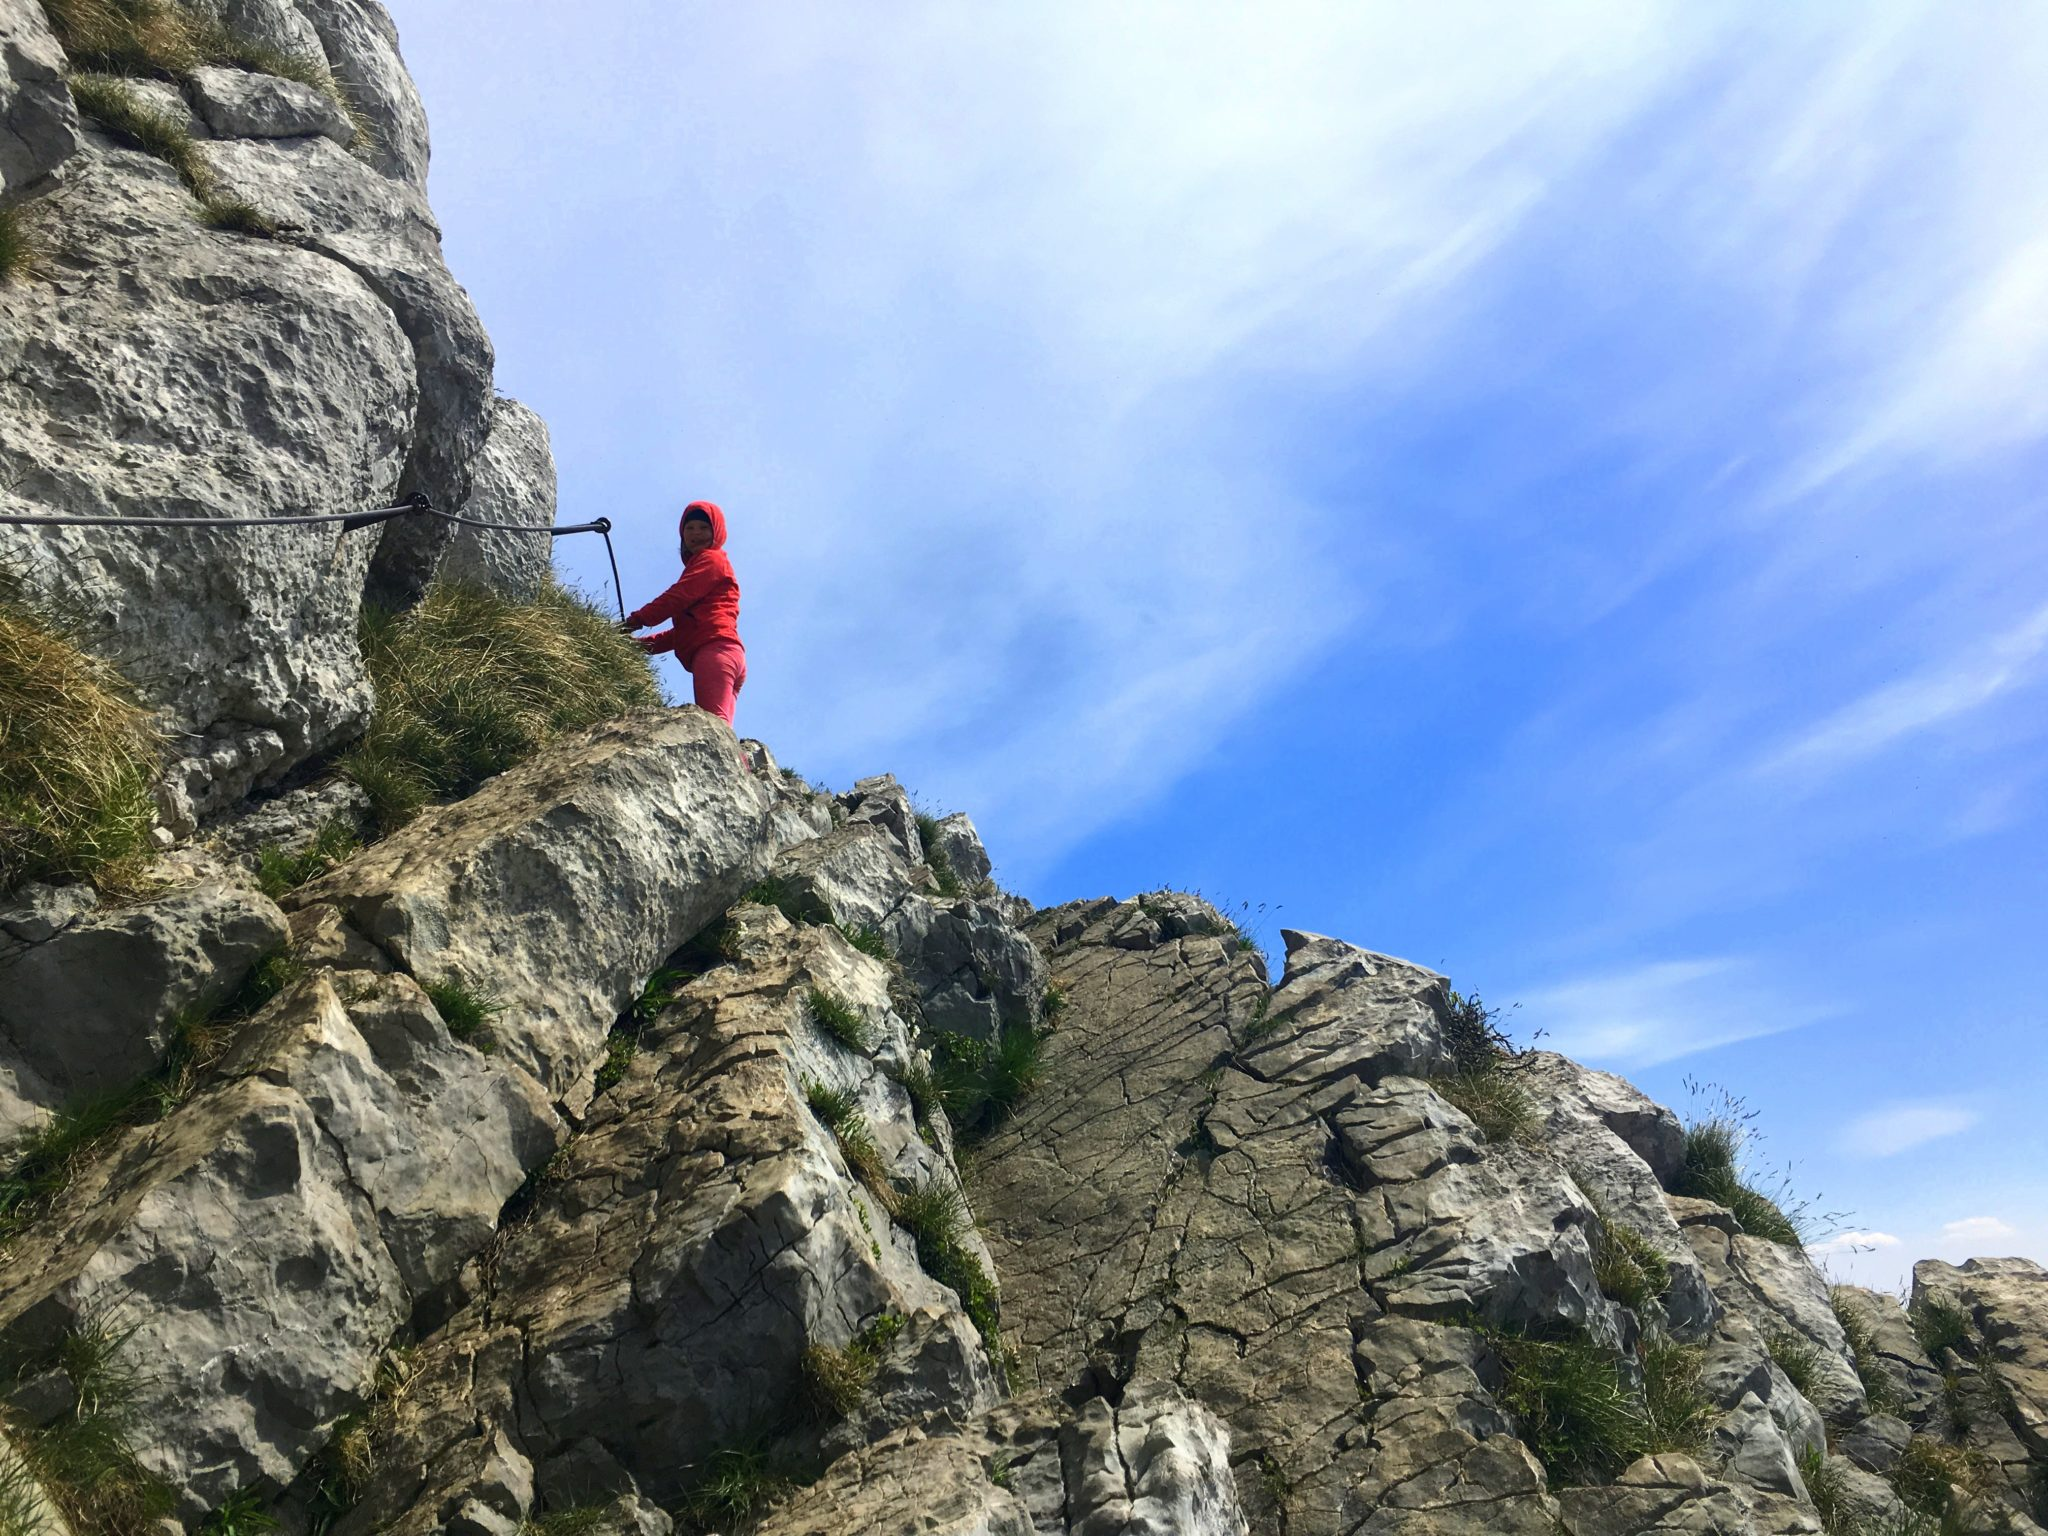 A little girl climbing a mountain